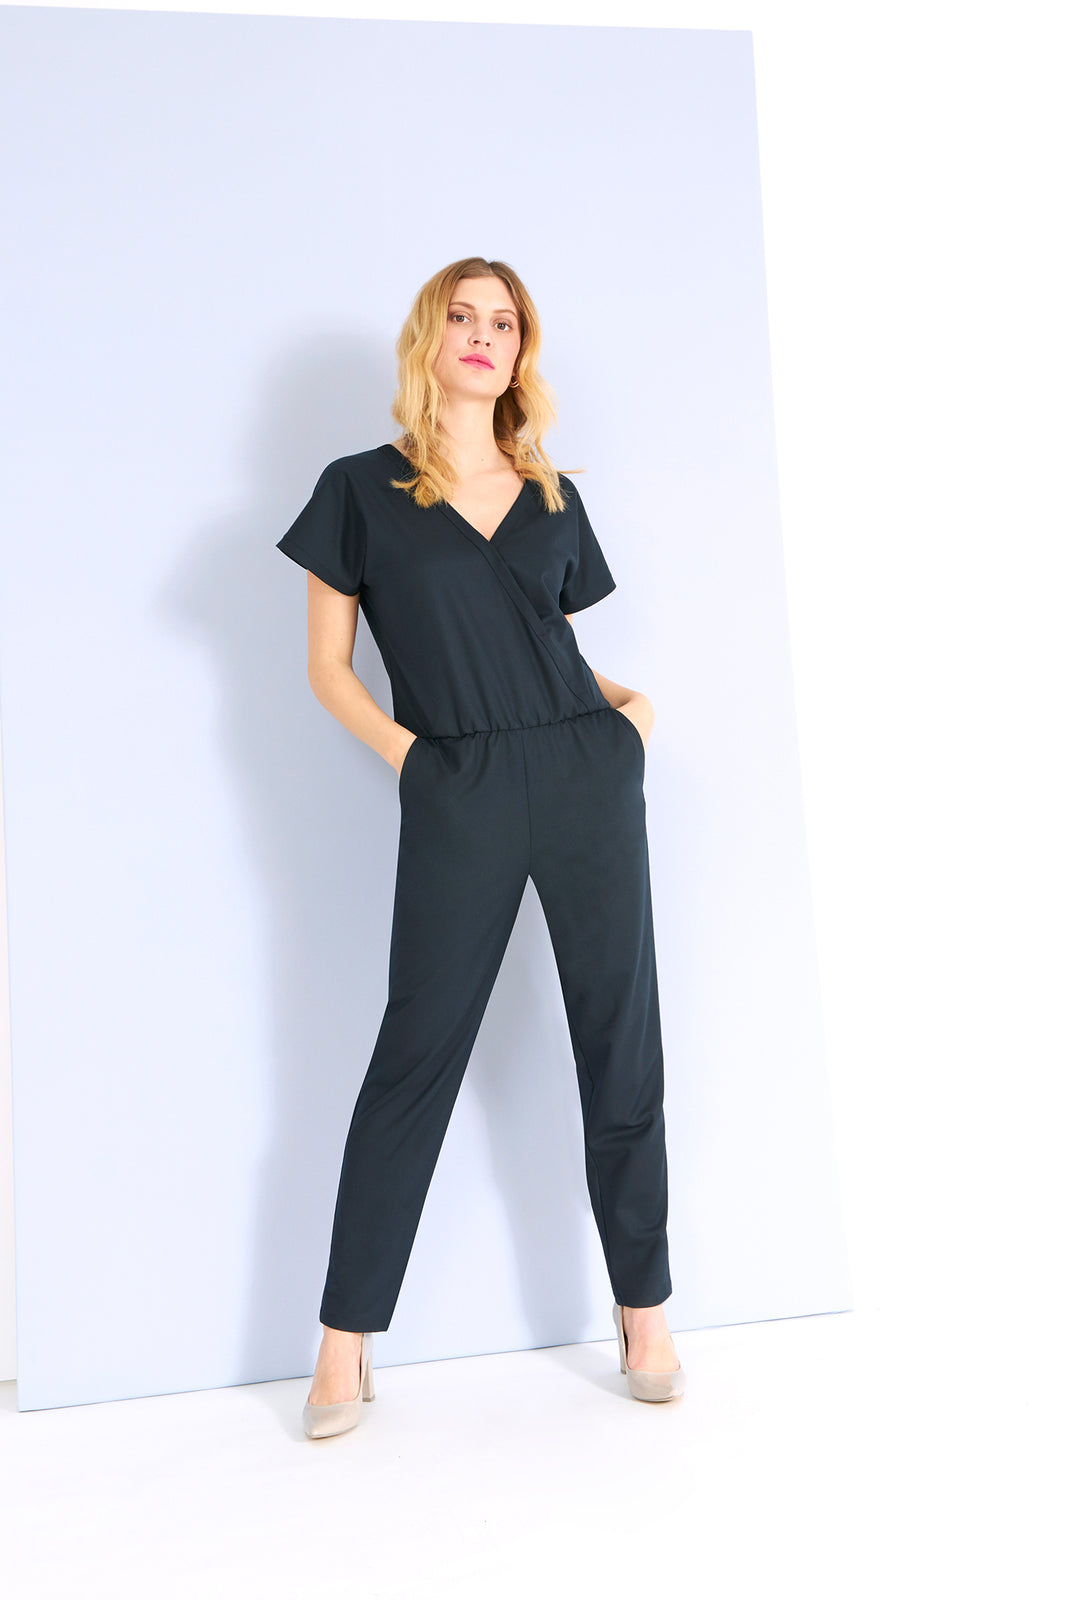 FILIPA - moderner Business One Piece Anzug